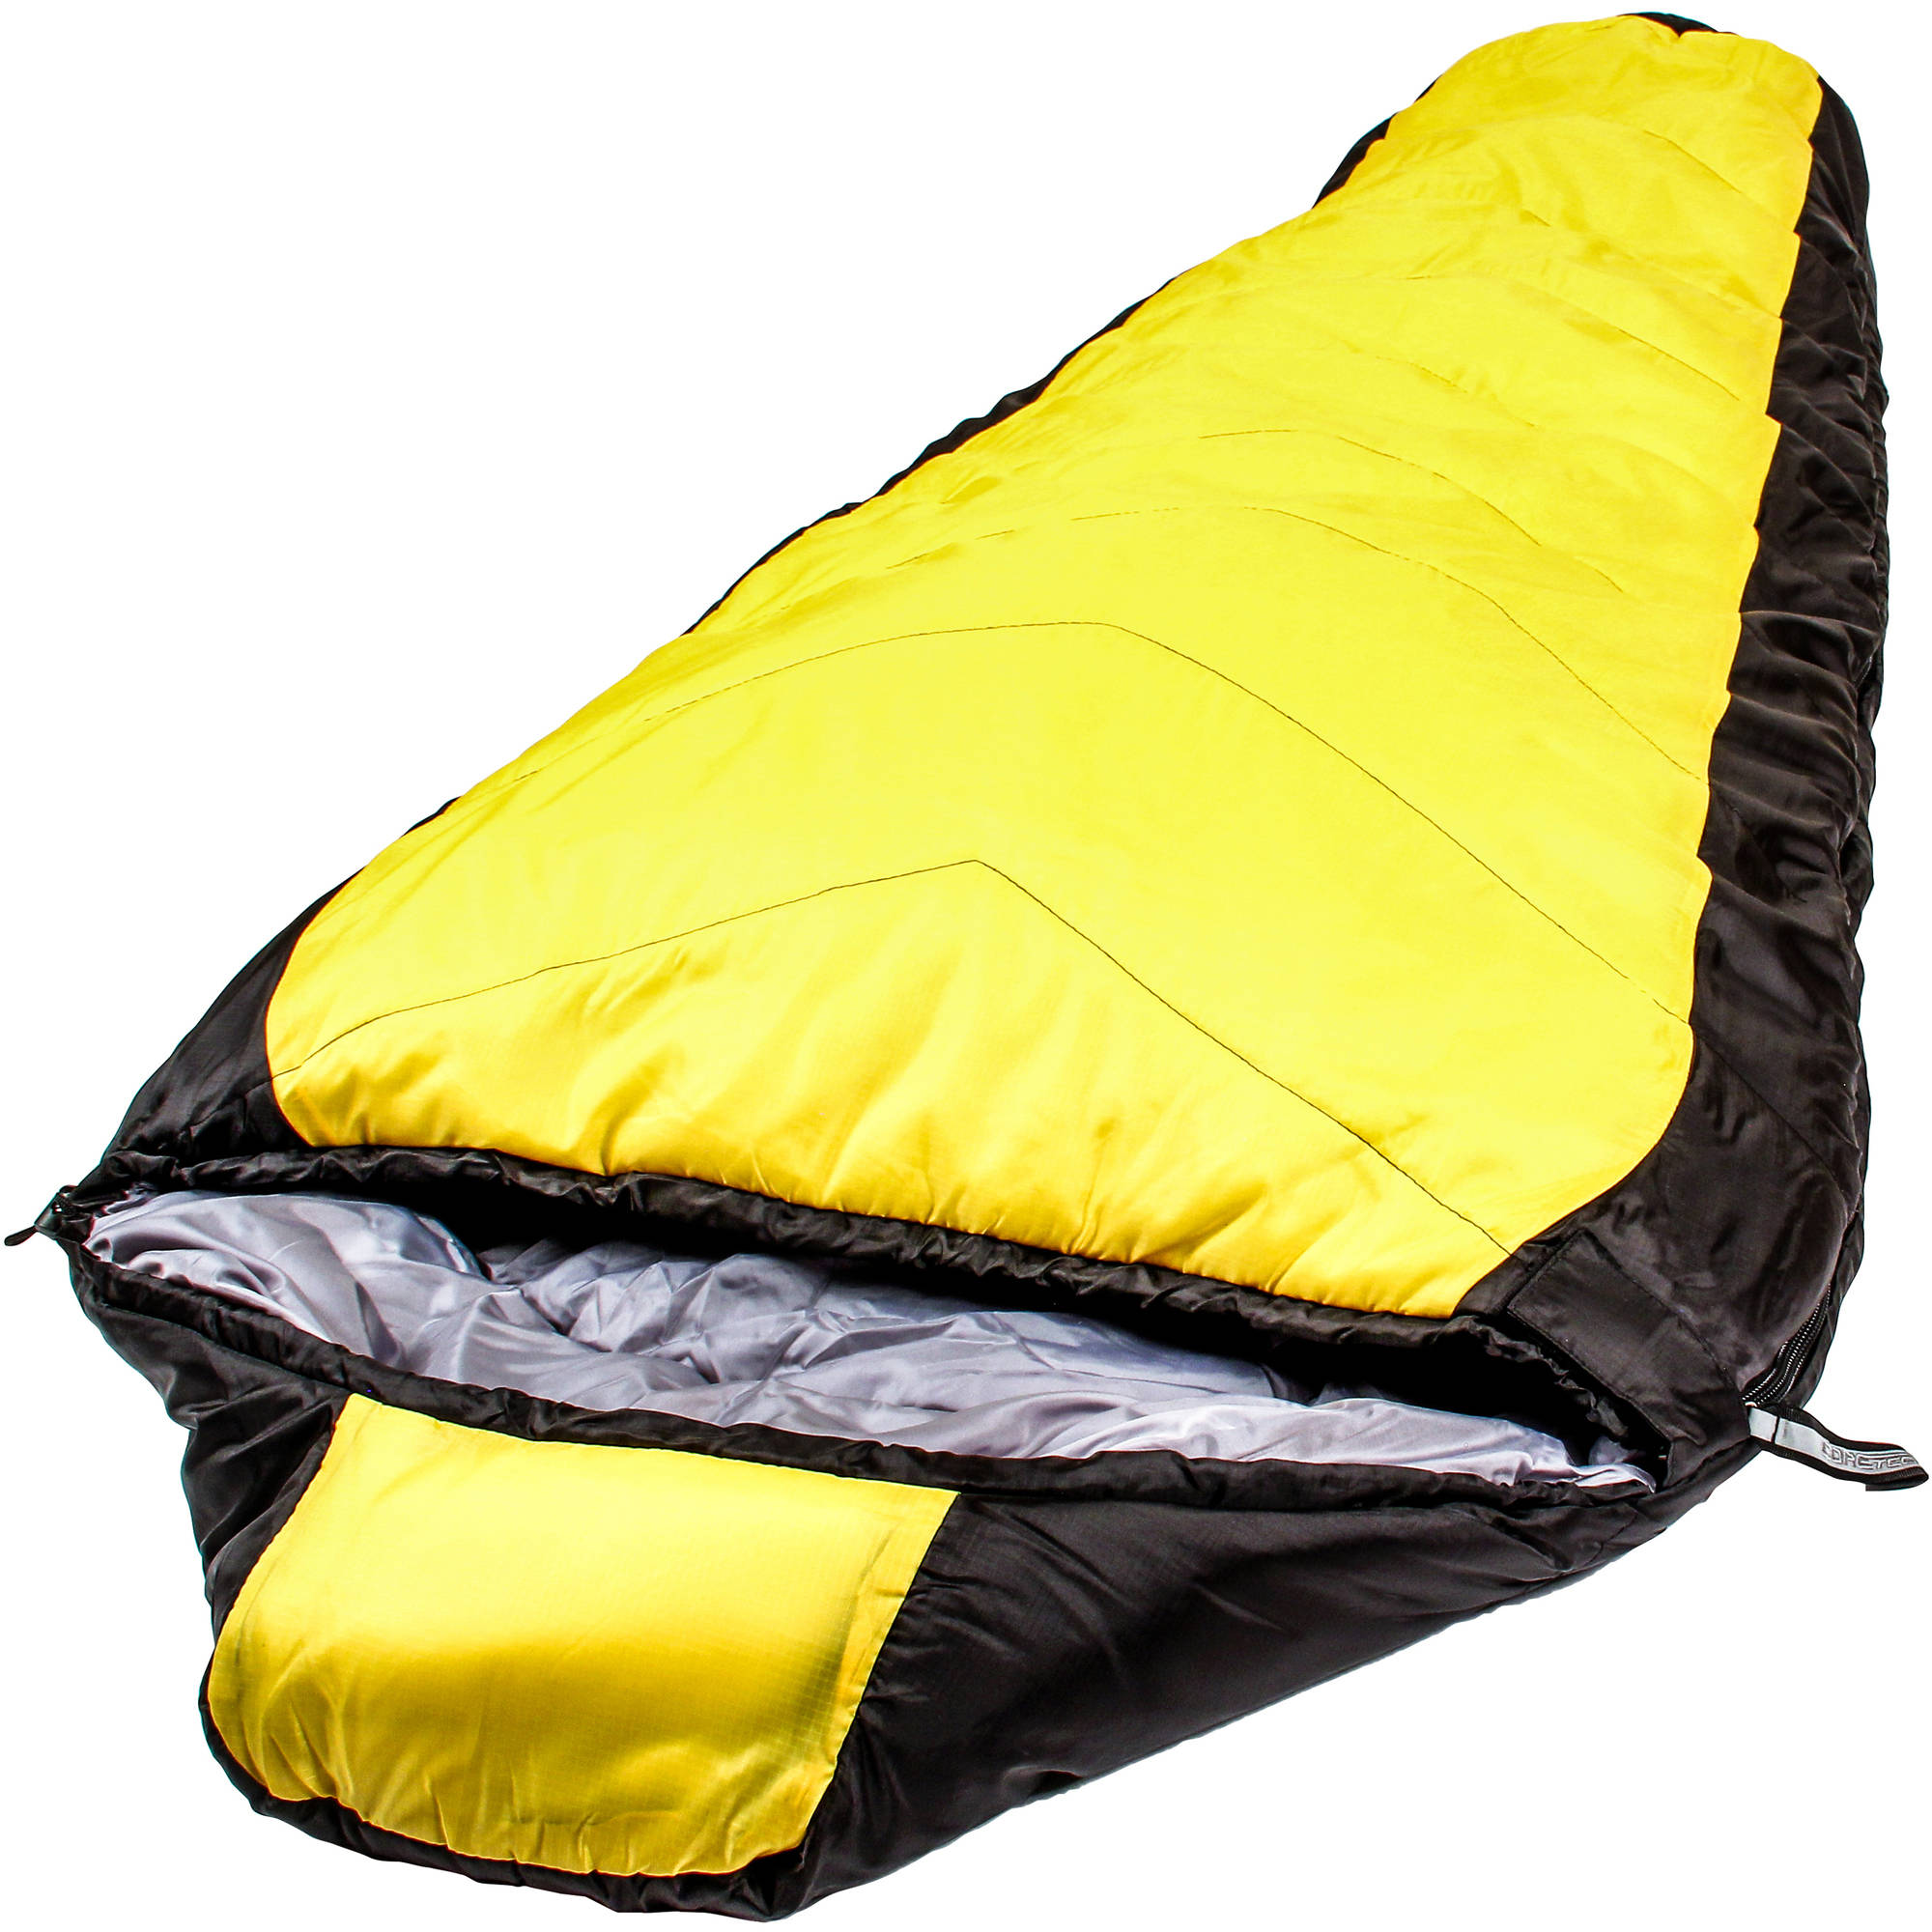 North Star 3.5 CoreTech Sleeping Bag, Yellow/Black